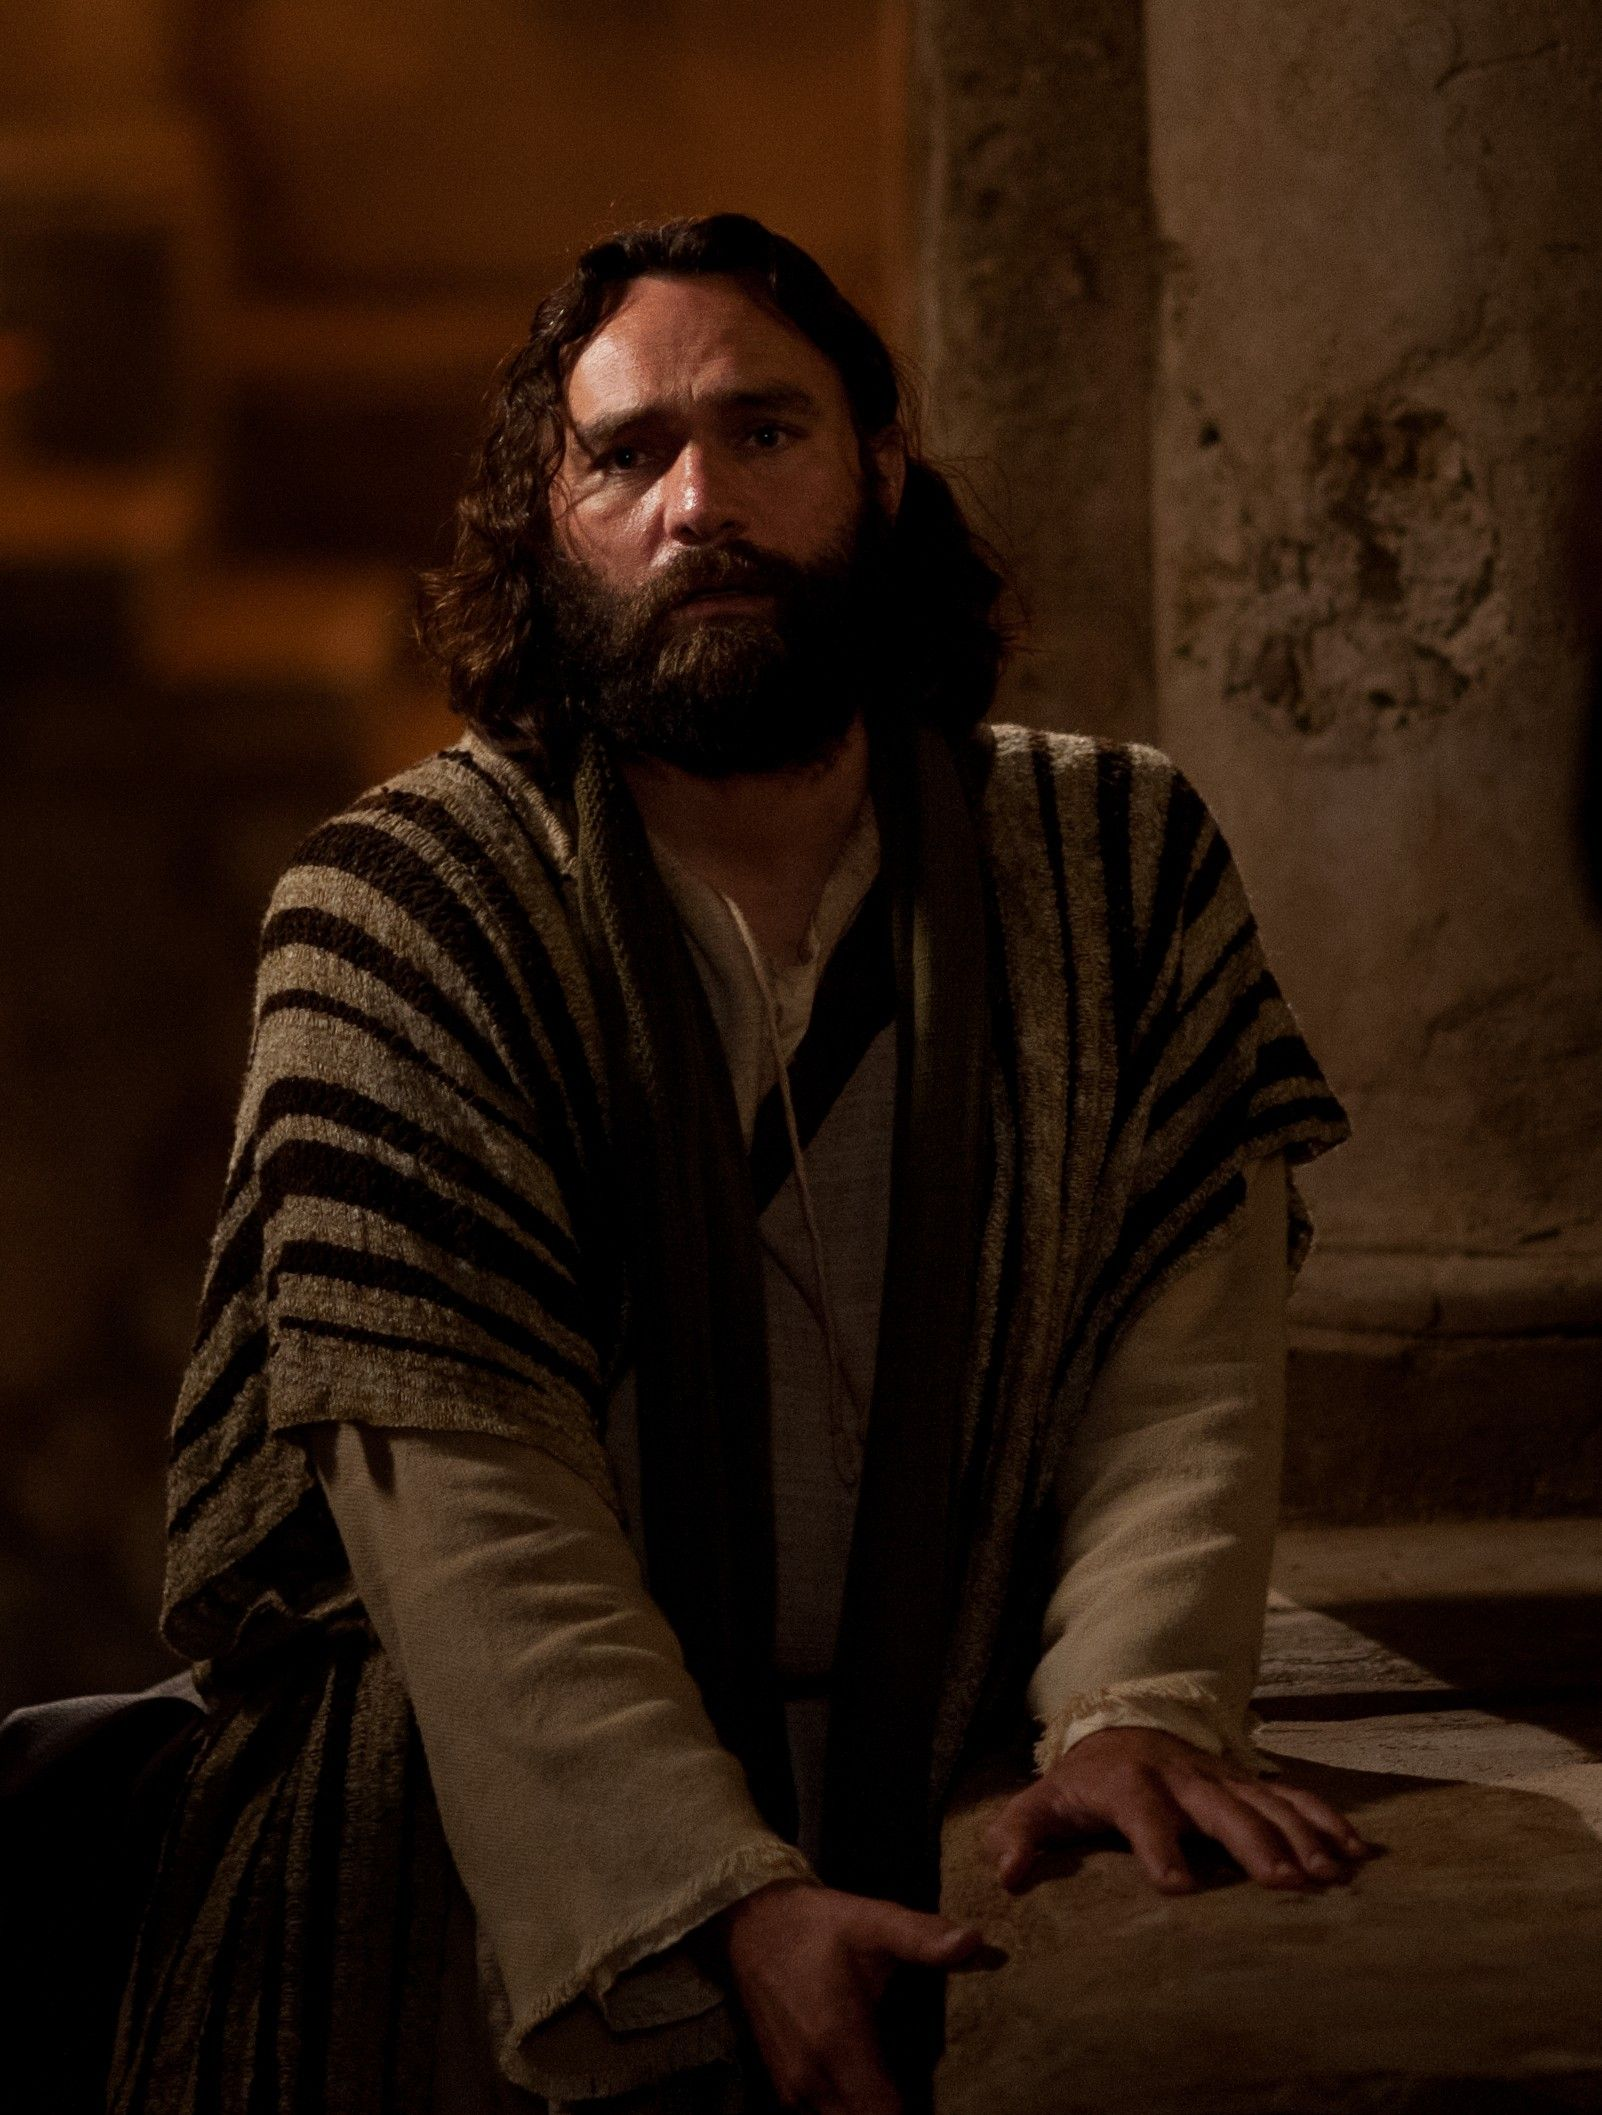 Peter looks distressed after denying his association with Jesus Christ.